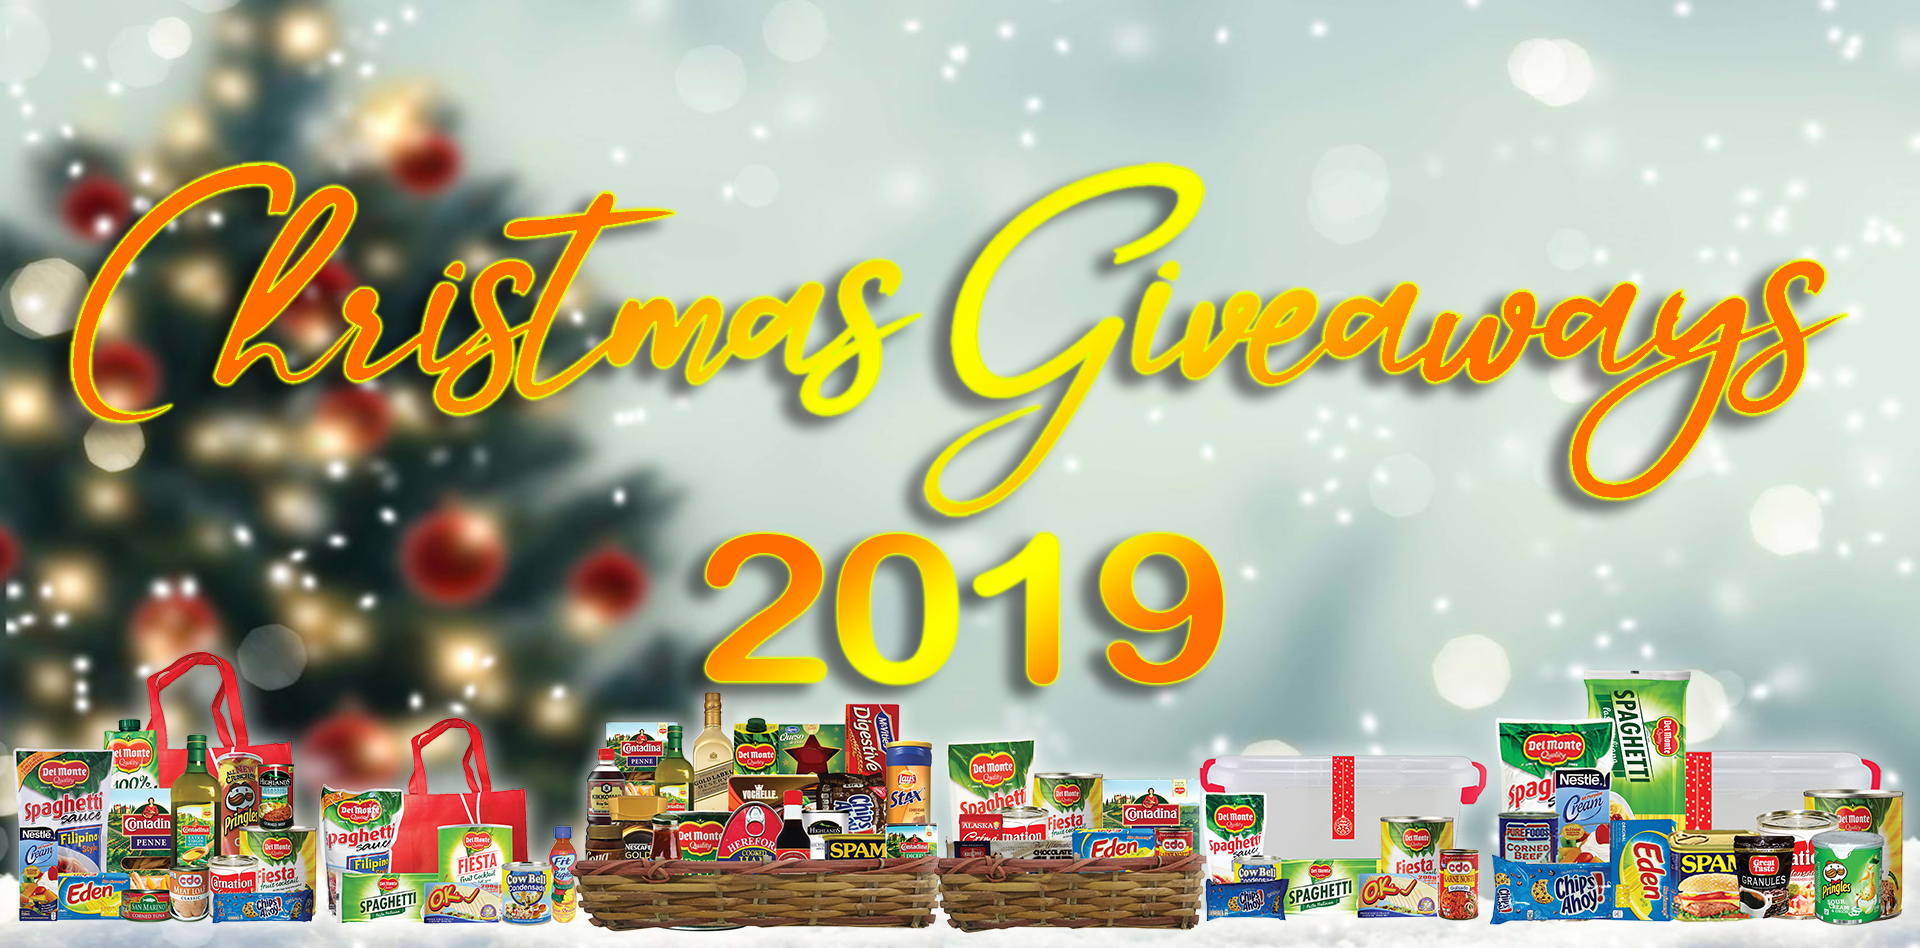 Christmas Giveaways 2019.Home